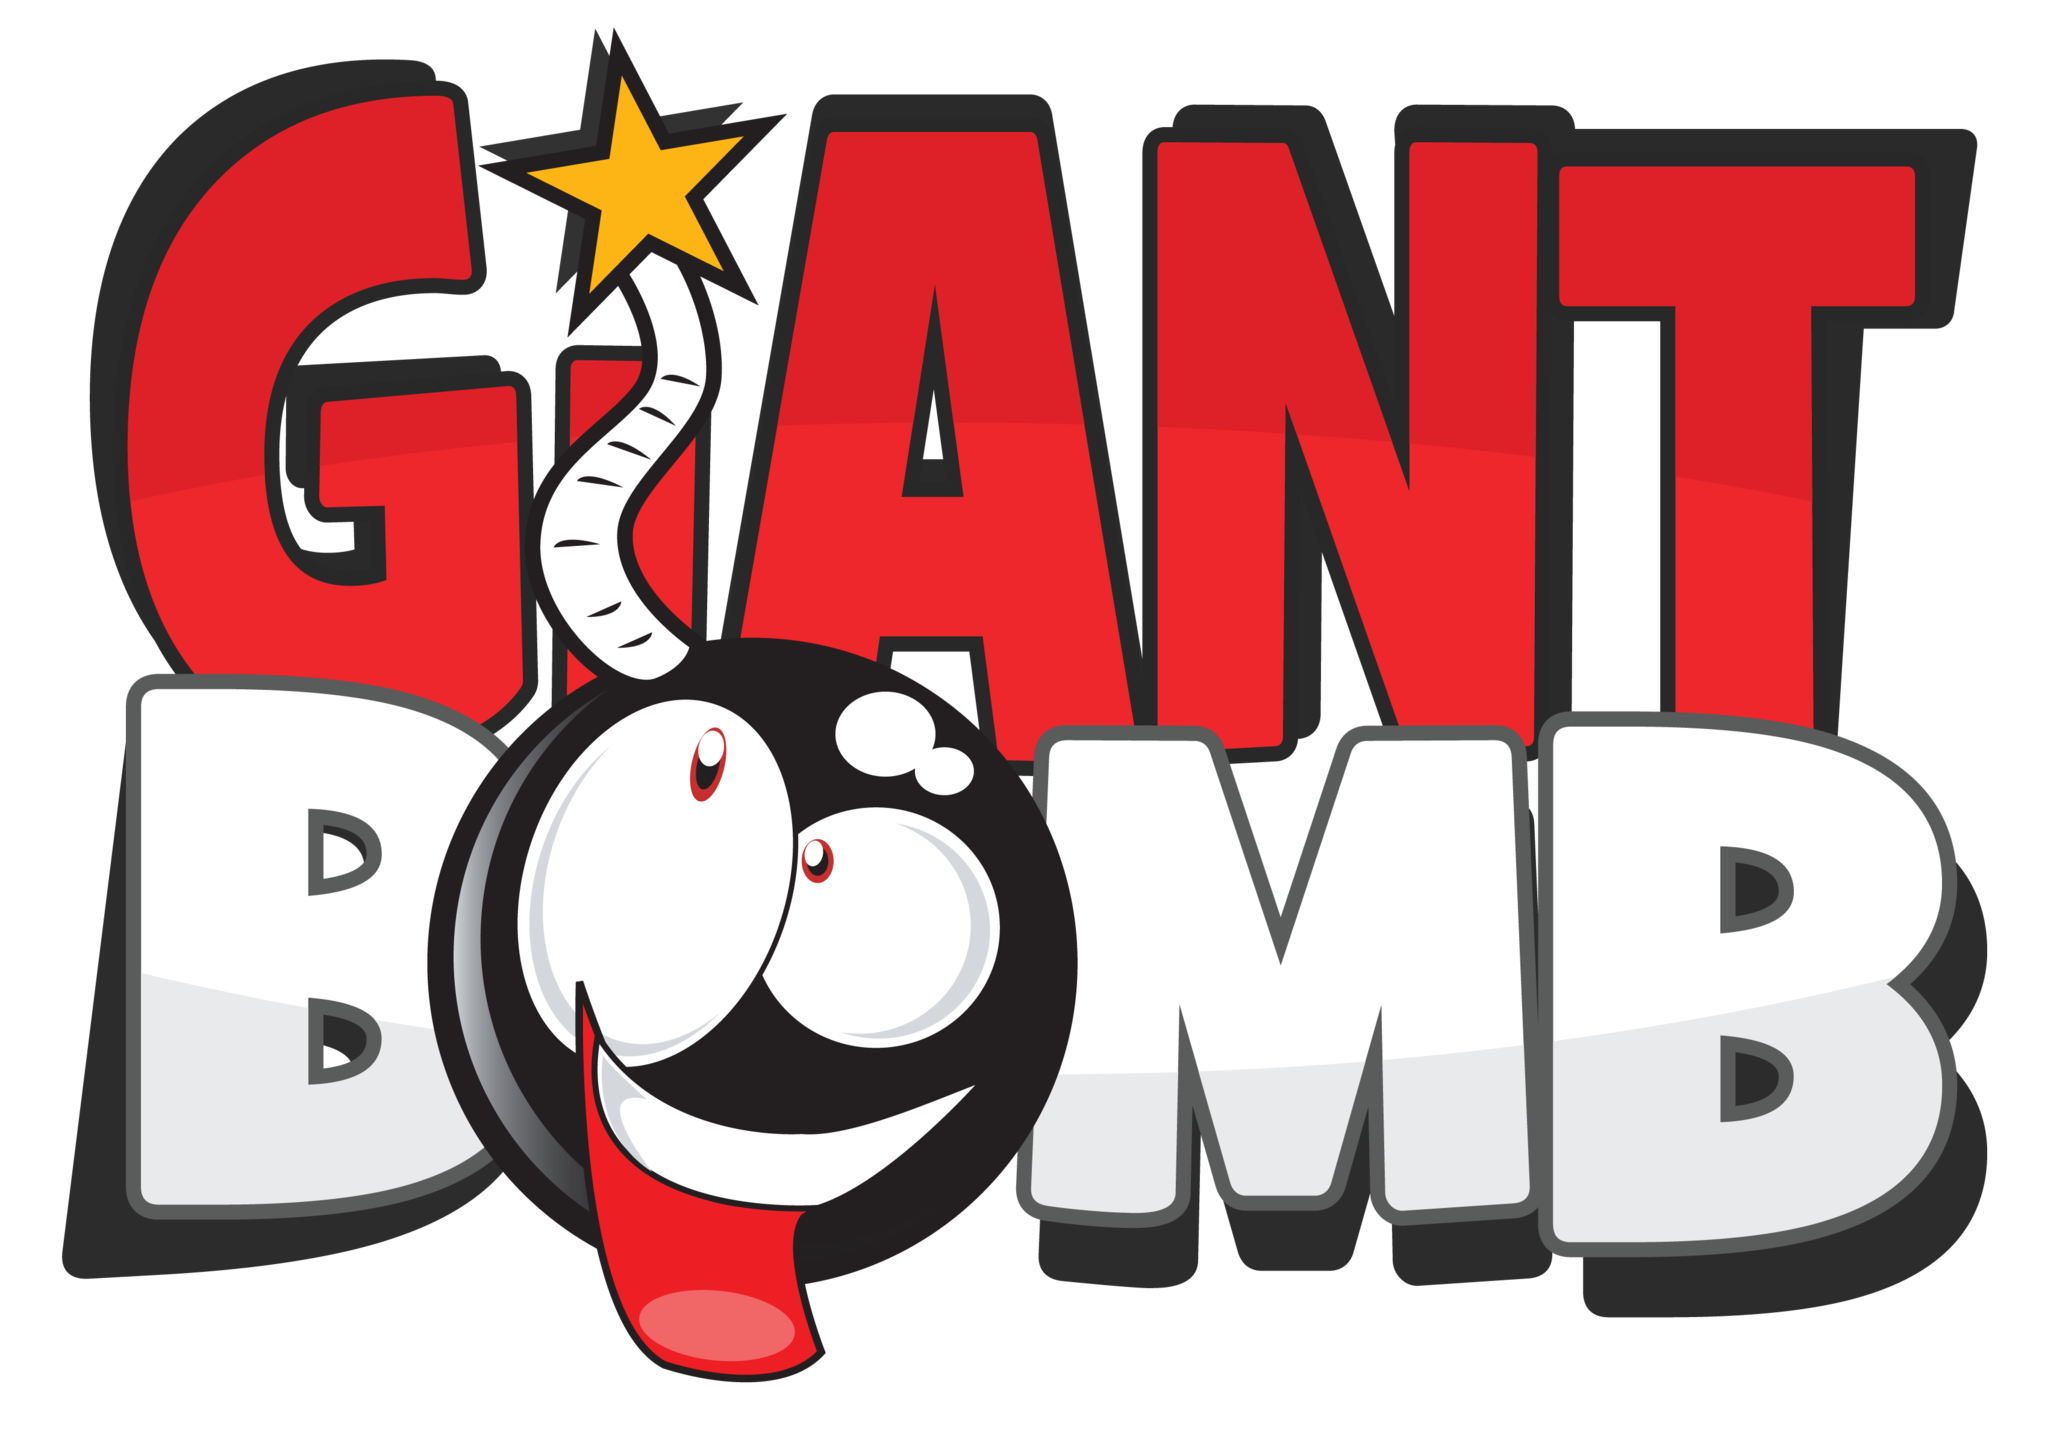 Write and post on giantbomb.com